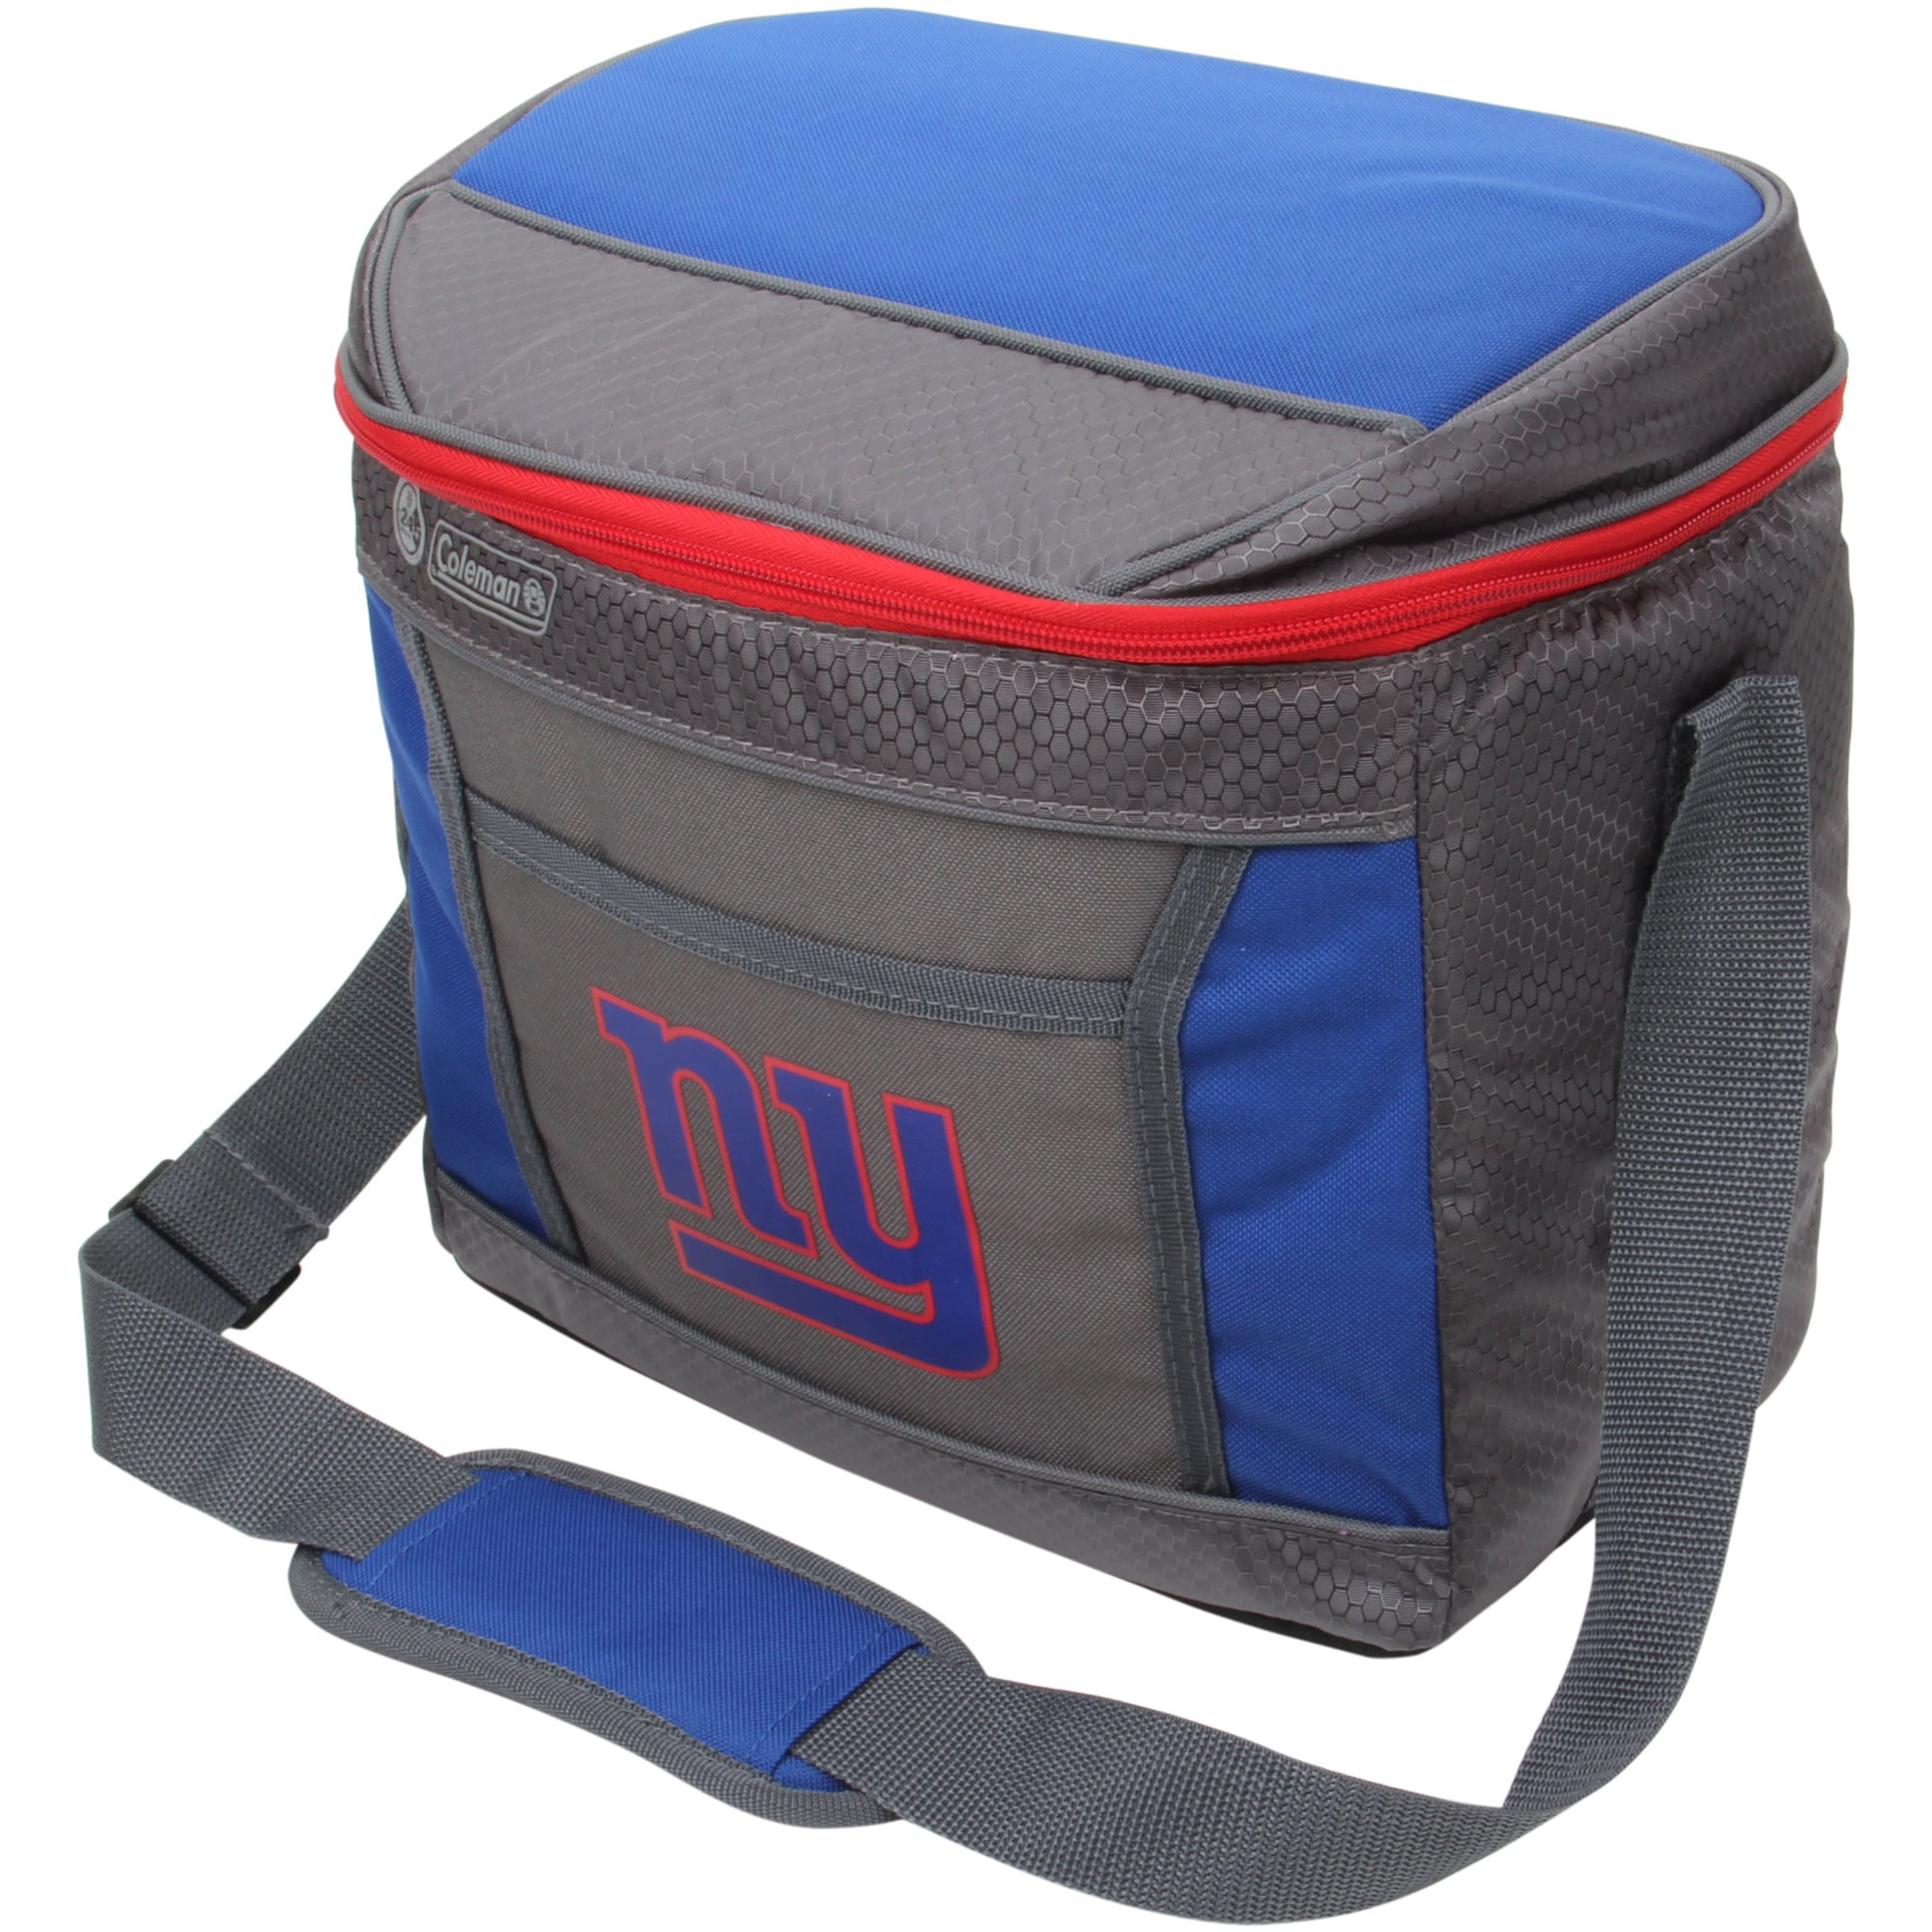 New York Giants Coleman 16-Can 24-Hour Soft-Sided Cooler